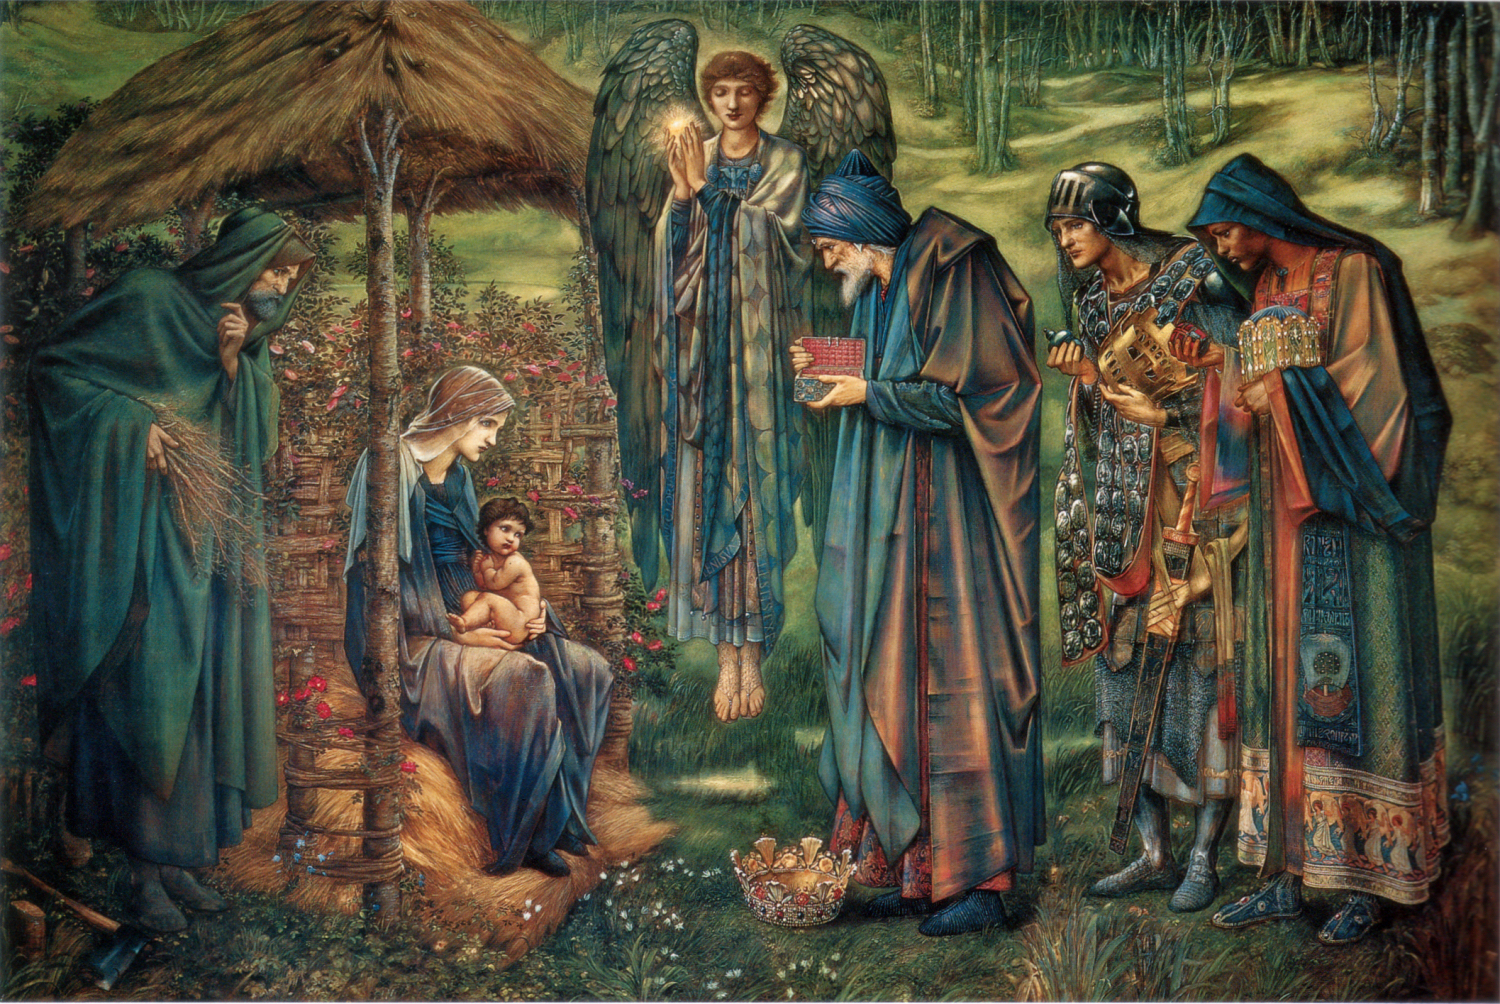 The Star of Bethlehem by Edward Burne-Jones, 1890